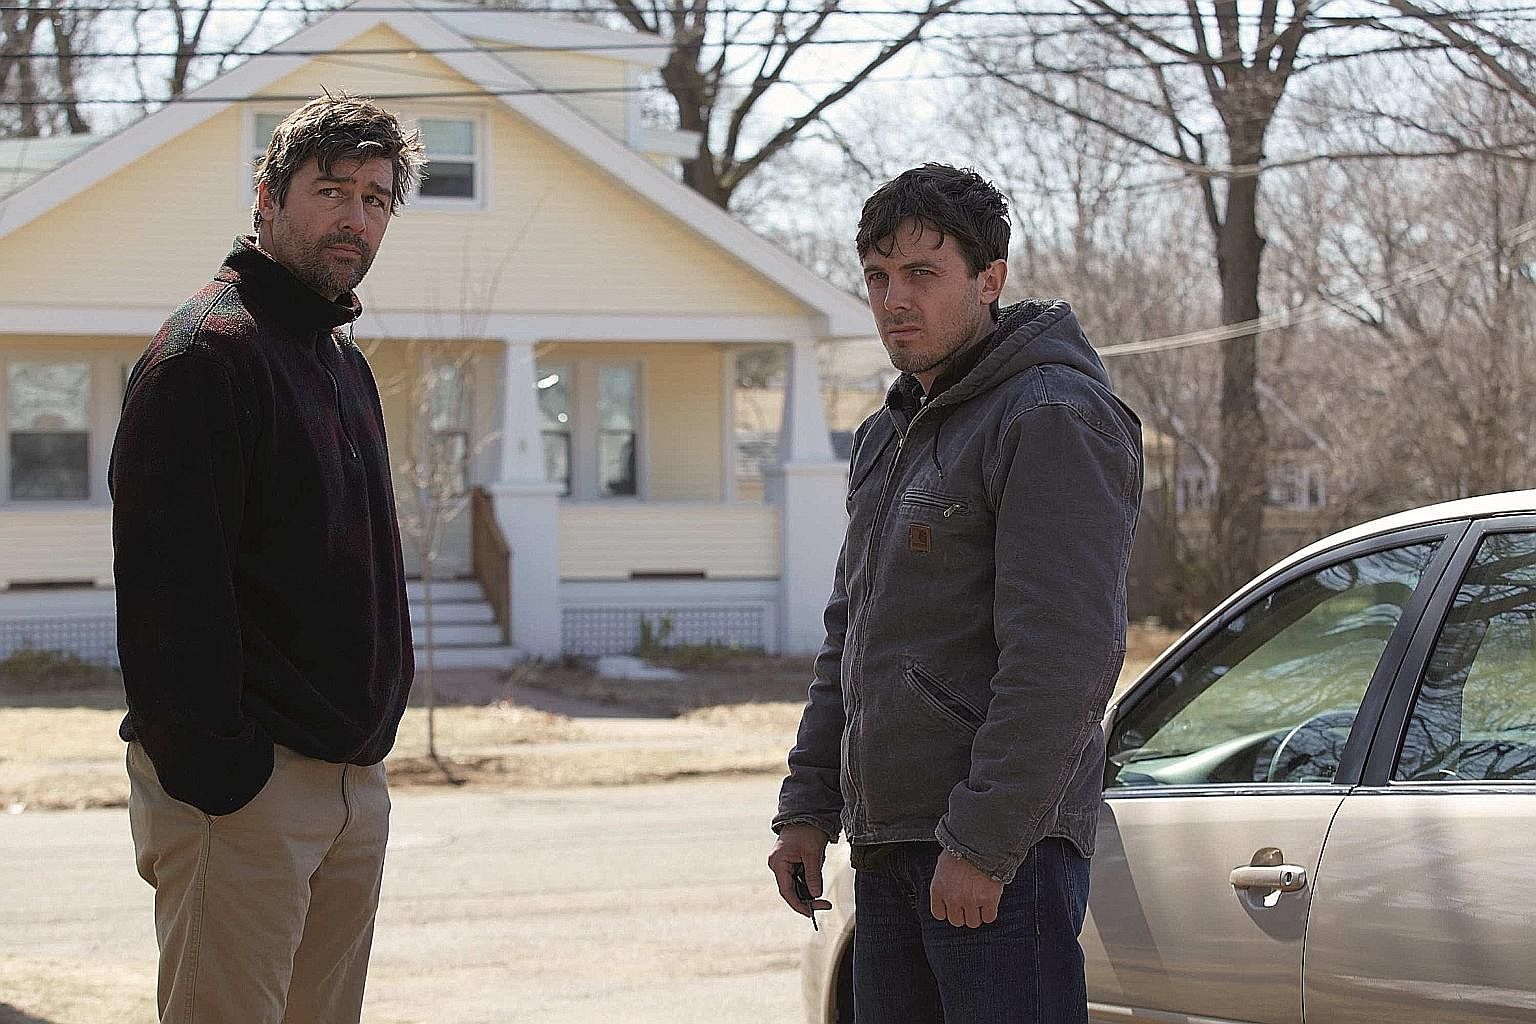 Manchester By The Sea stars Kyle Chandler (left) and Casey Affleck (right).